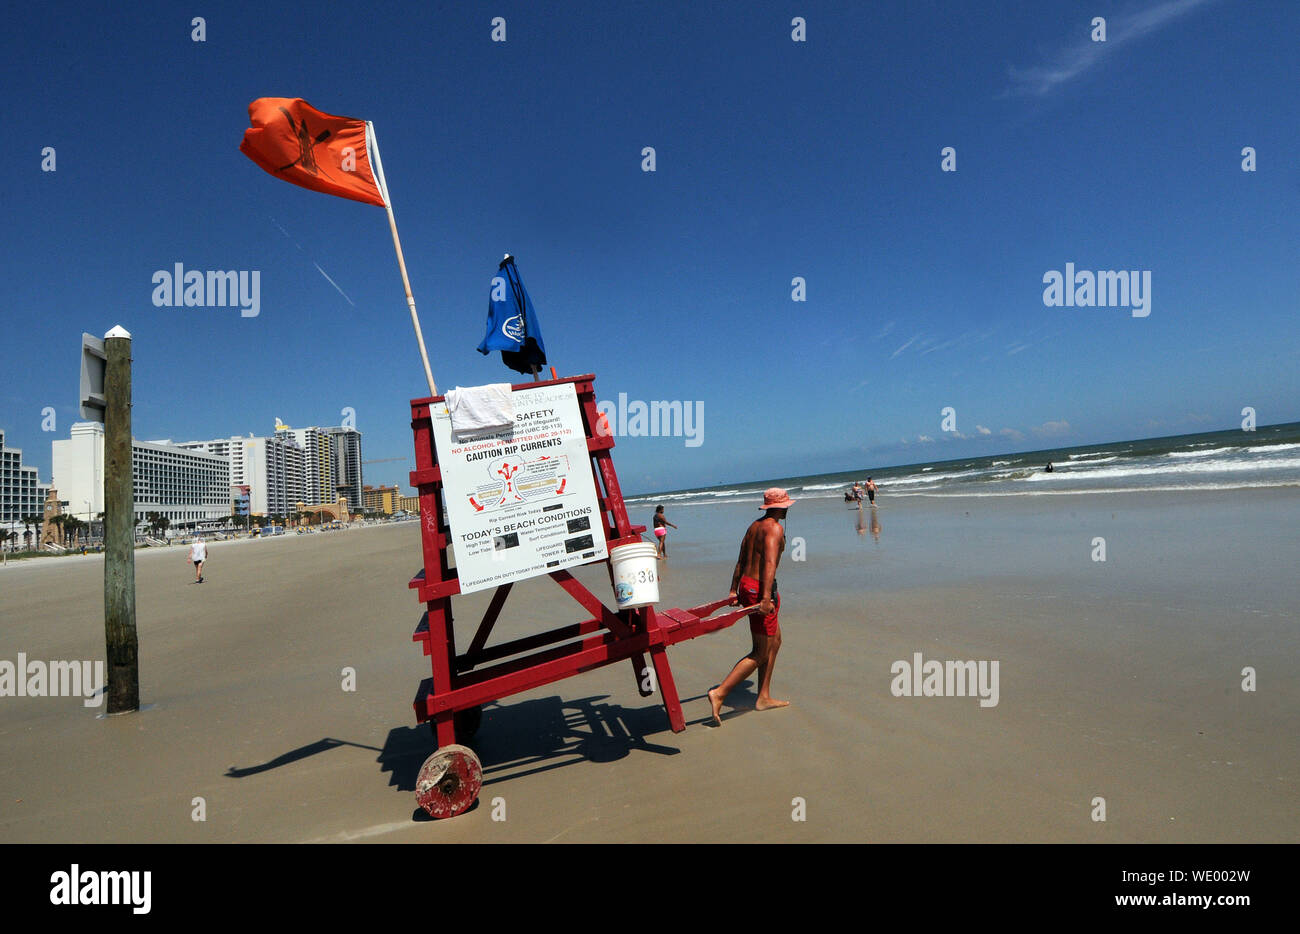 Daytona Beach, United States. 29th Aug, 2019. A lifeguard moves his chair on a calm and quiet beach several days ahead of the Hurricane Dorian which is expected to become a Category 4 hurricane before making landfall in Florida on Labor Day. Credit: SOPA Images Limited/Alamy Live News Stock Photo